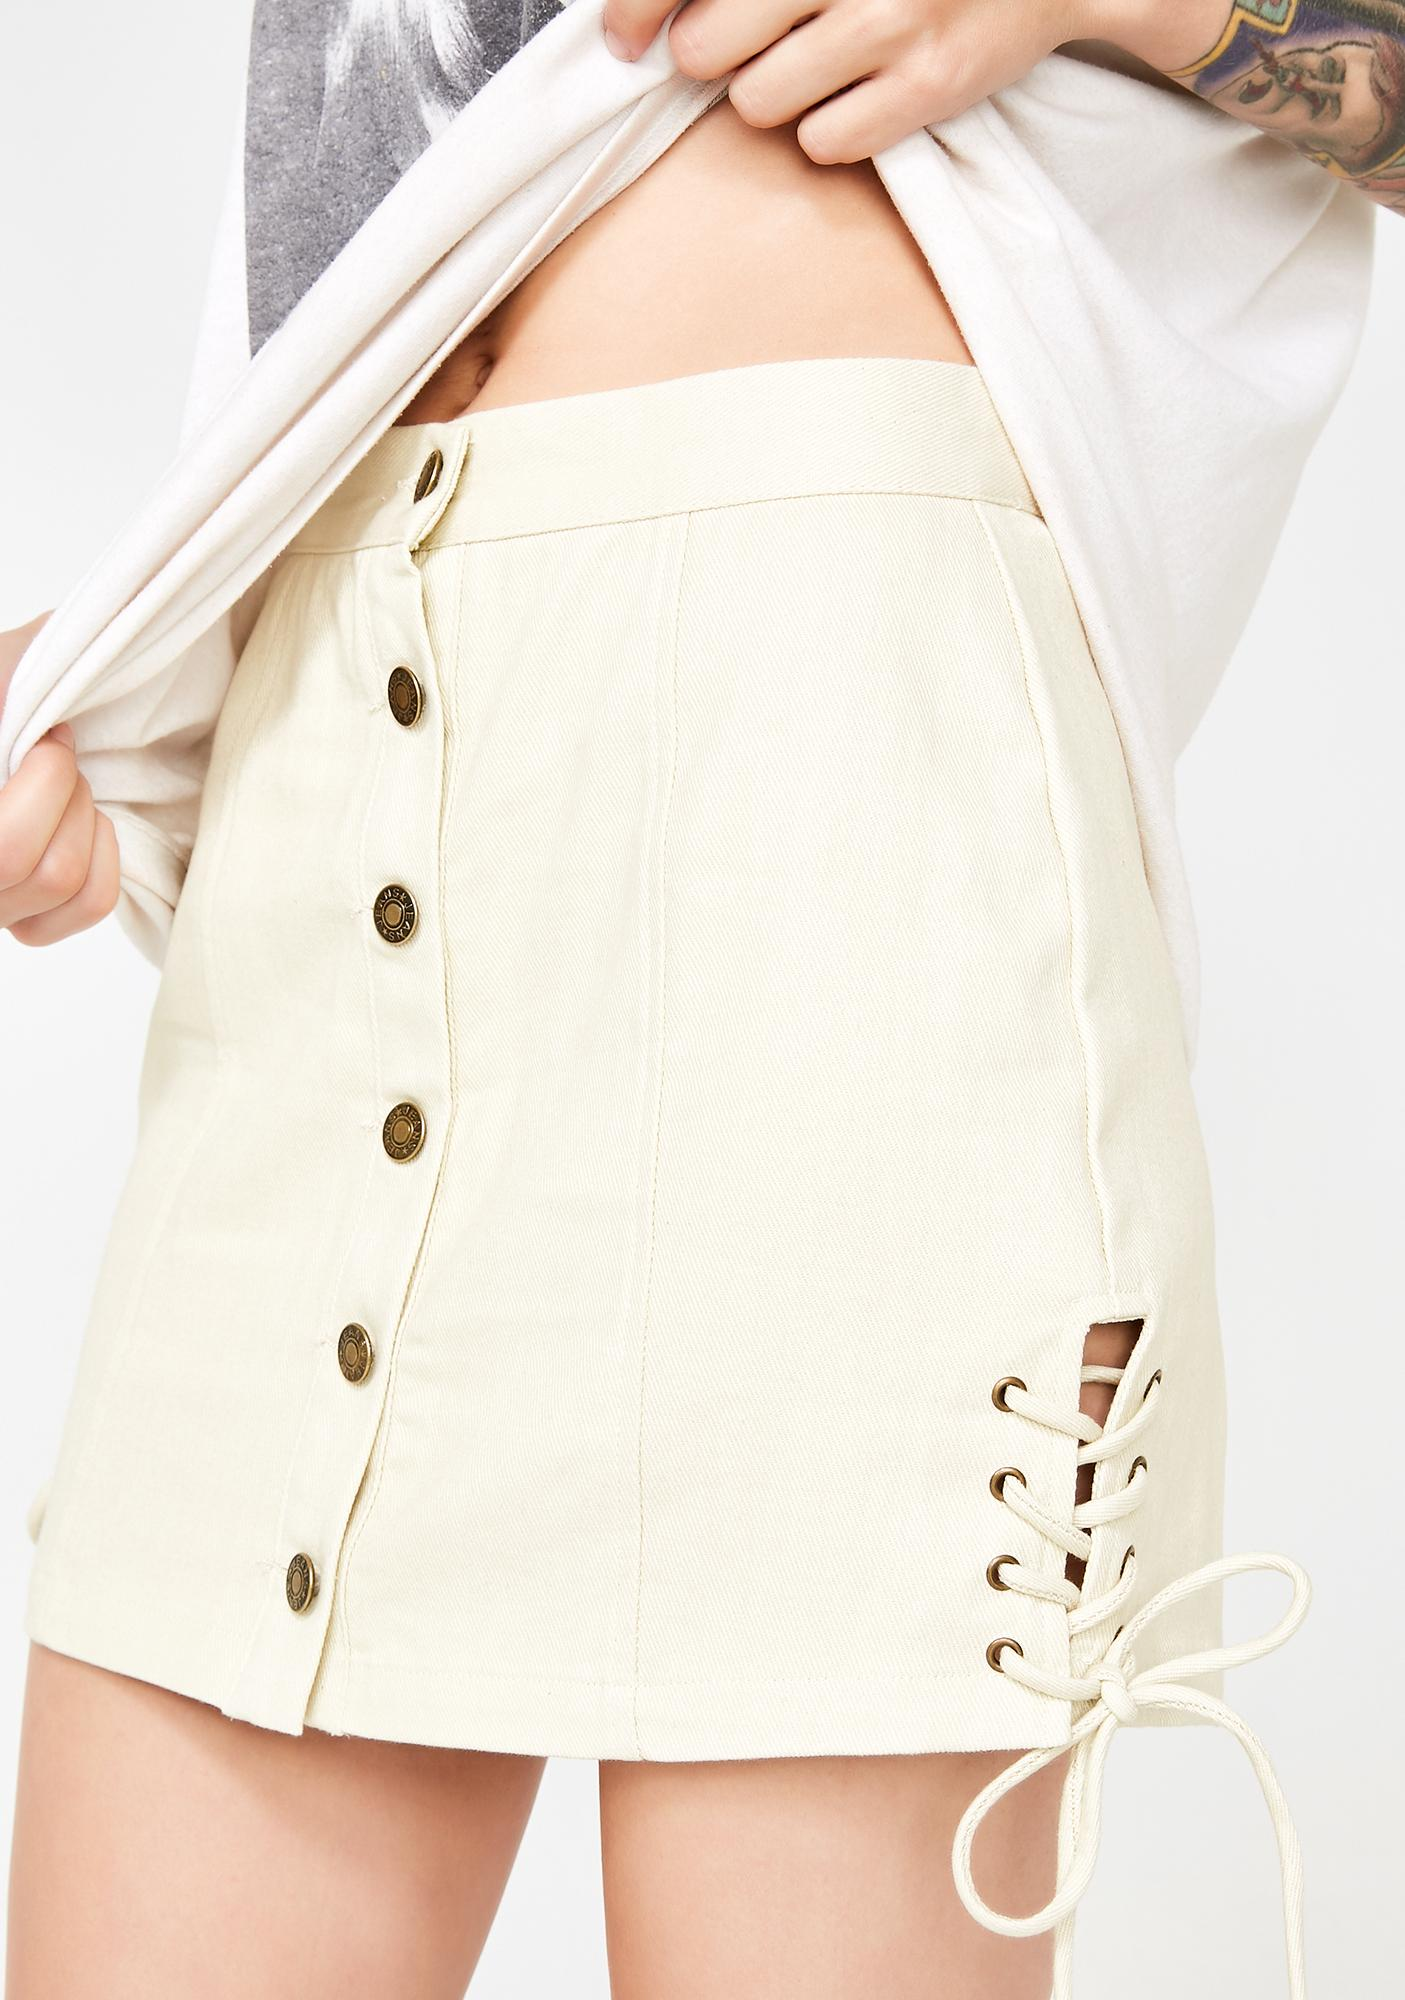 Classy Sass Lace-Up Mini Skirt